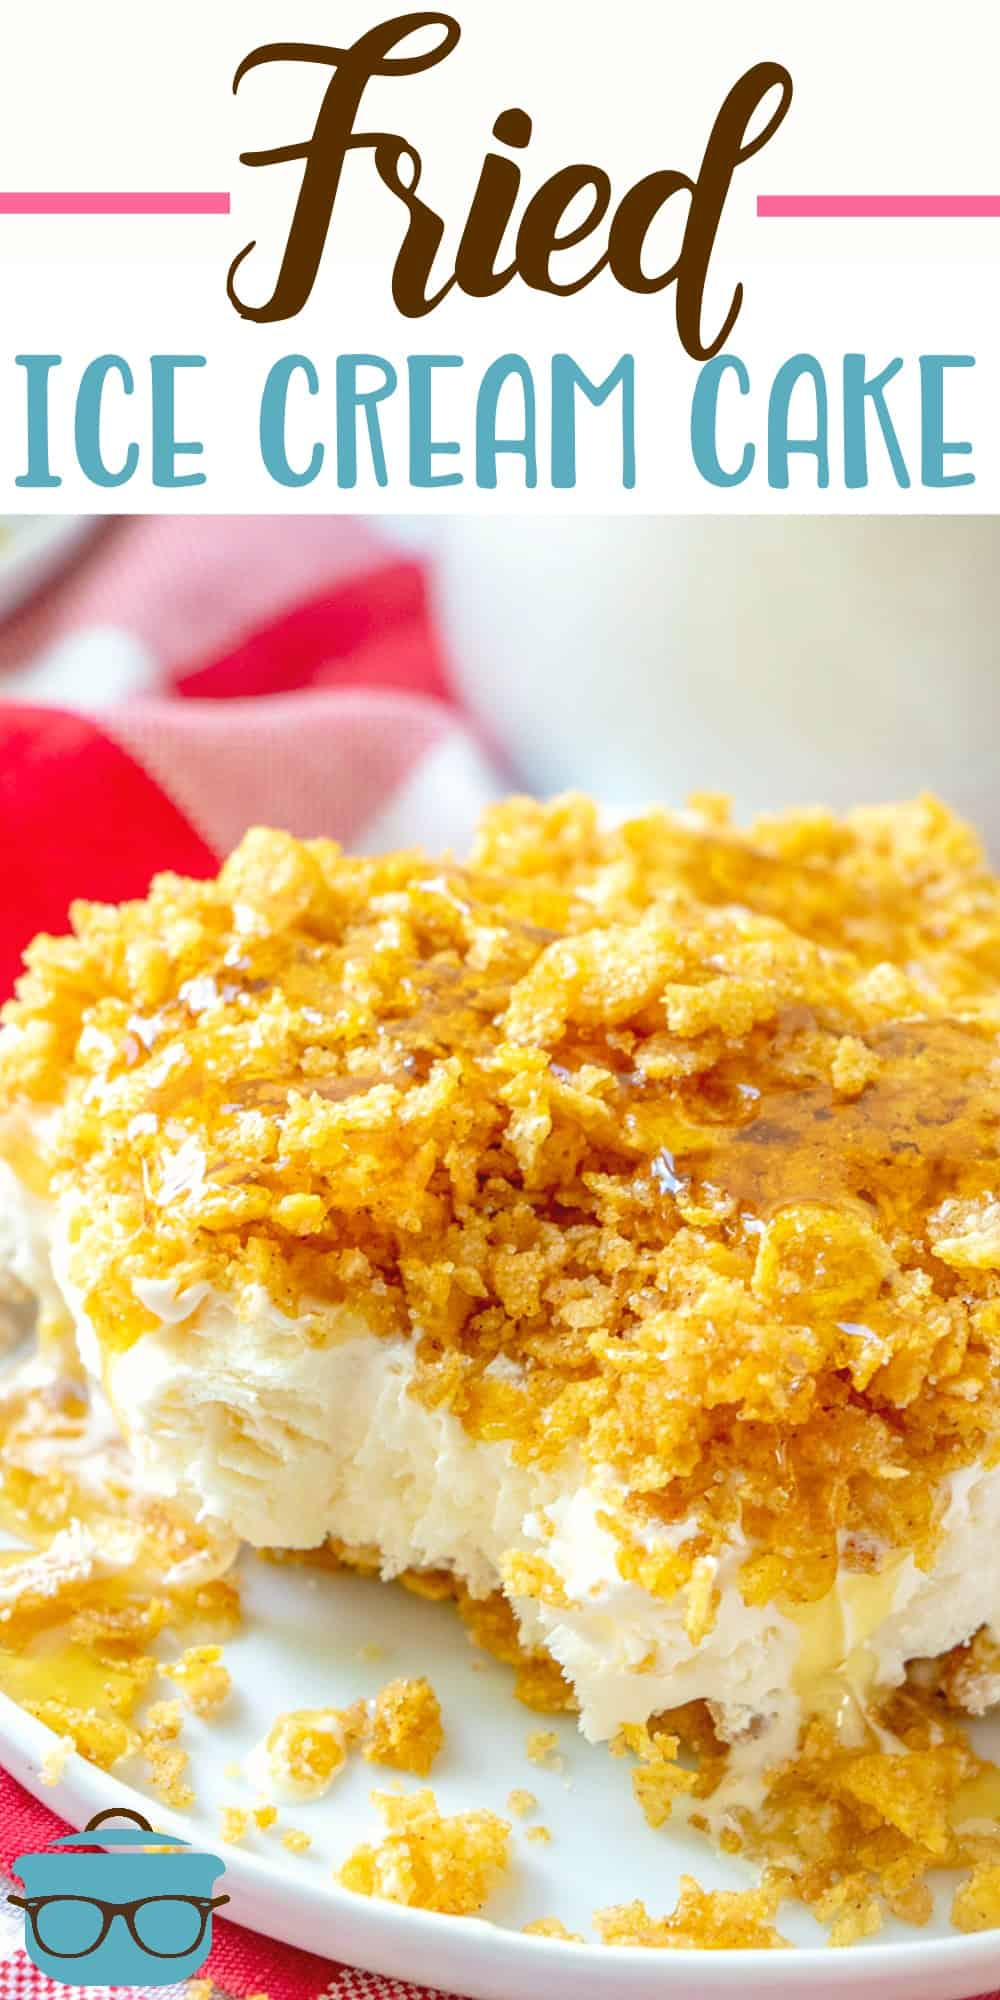 Fried Ice Cream Cake is made with softened ice cream, whipped topping, crushed corn flakes, cinnamon and drizzled with honey and chocolate. #friedicecreamcake #dessert